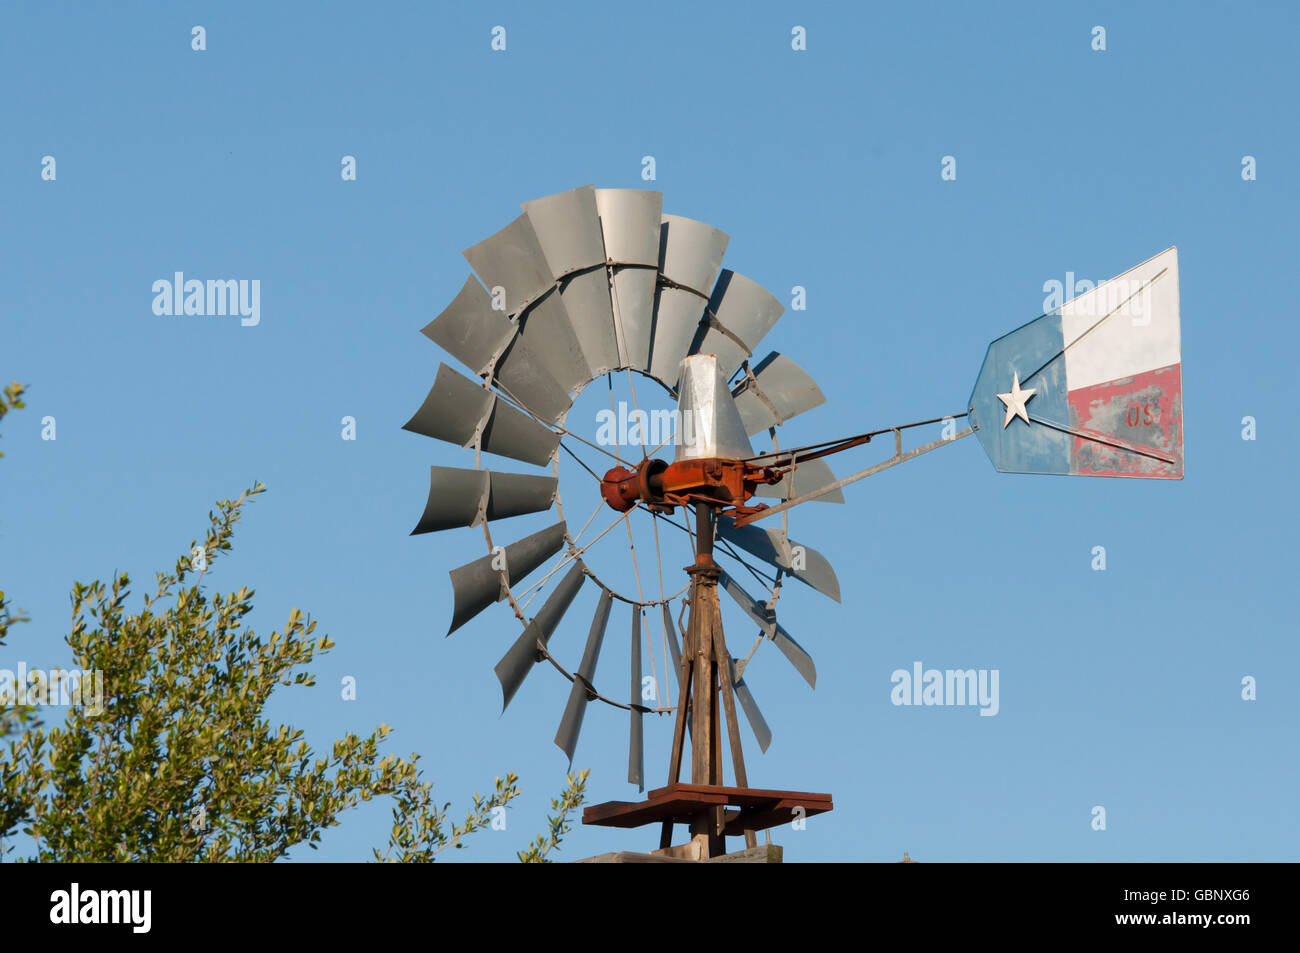 Windmill with Texas flag painted on wind vane - Stock Image